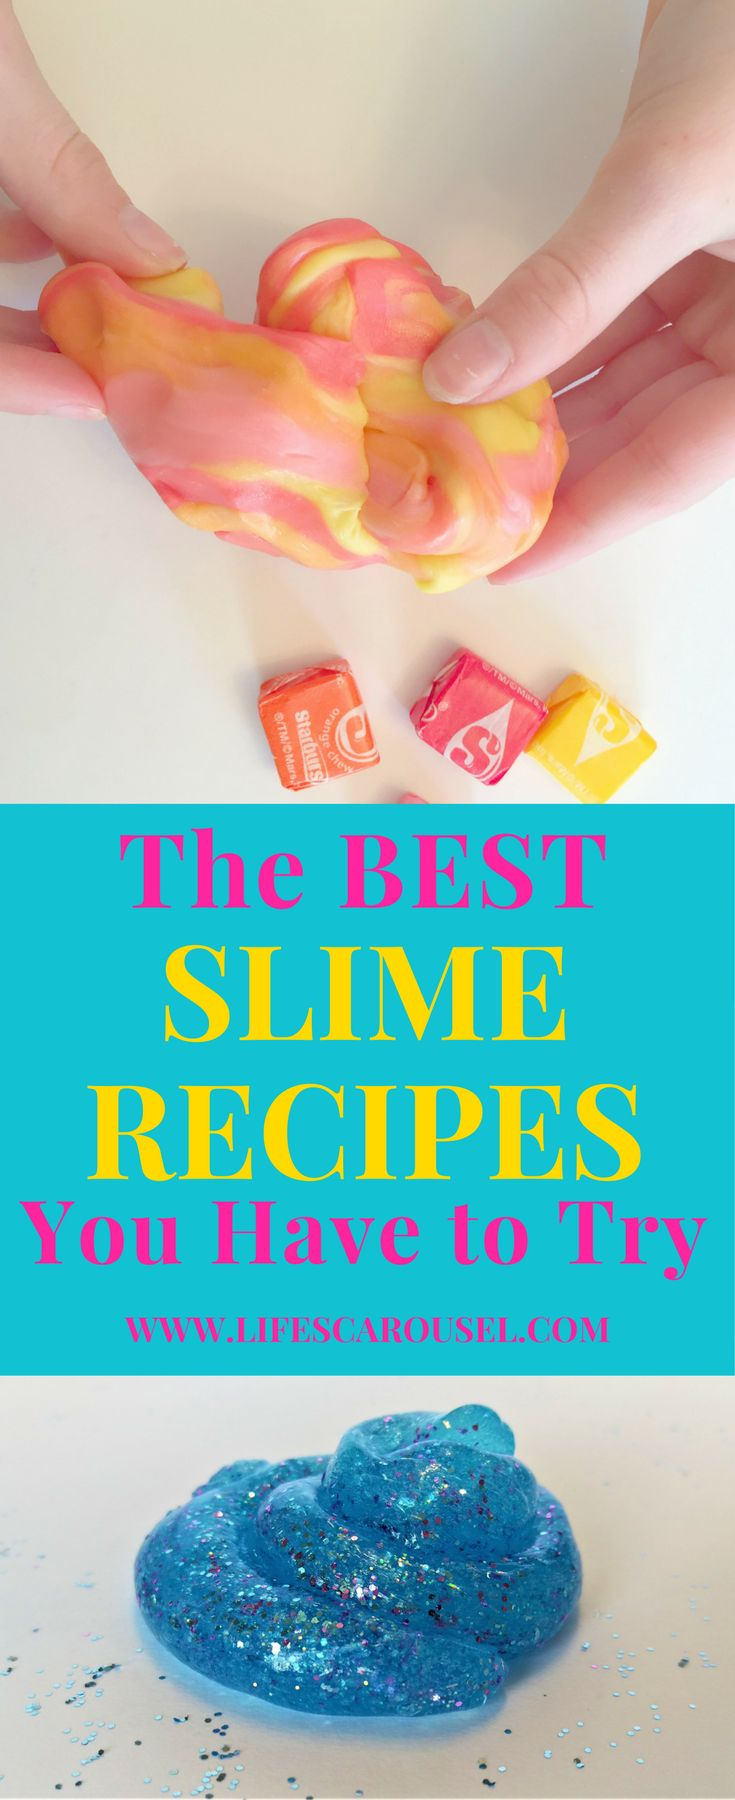 Best Slime Recipes For Making Slime With Kids For Science: Best 10+ Galaxy Slime Ideas On Pinterest